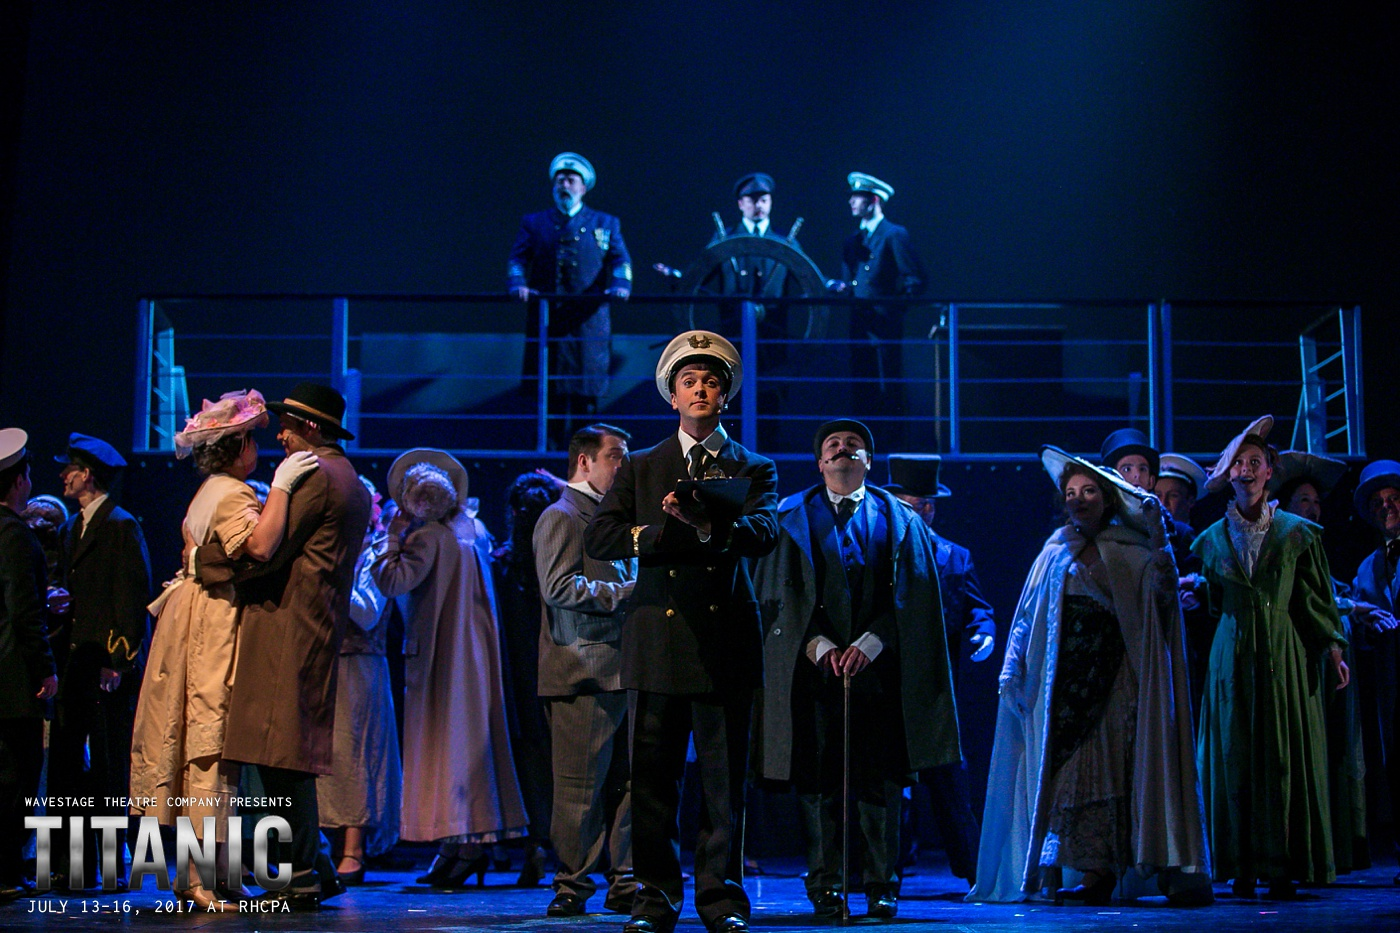 titanic-musical-richmond-hill-theatre-toronto_0014.jpg